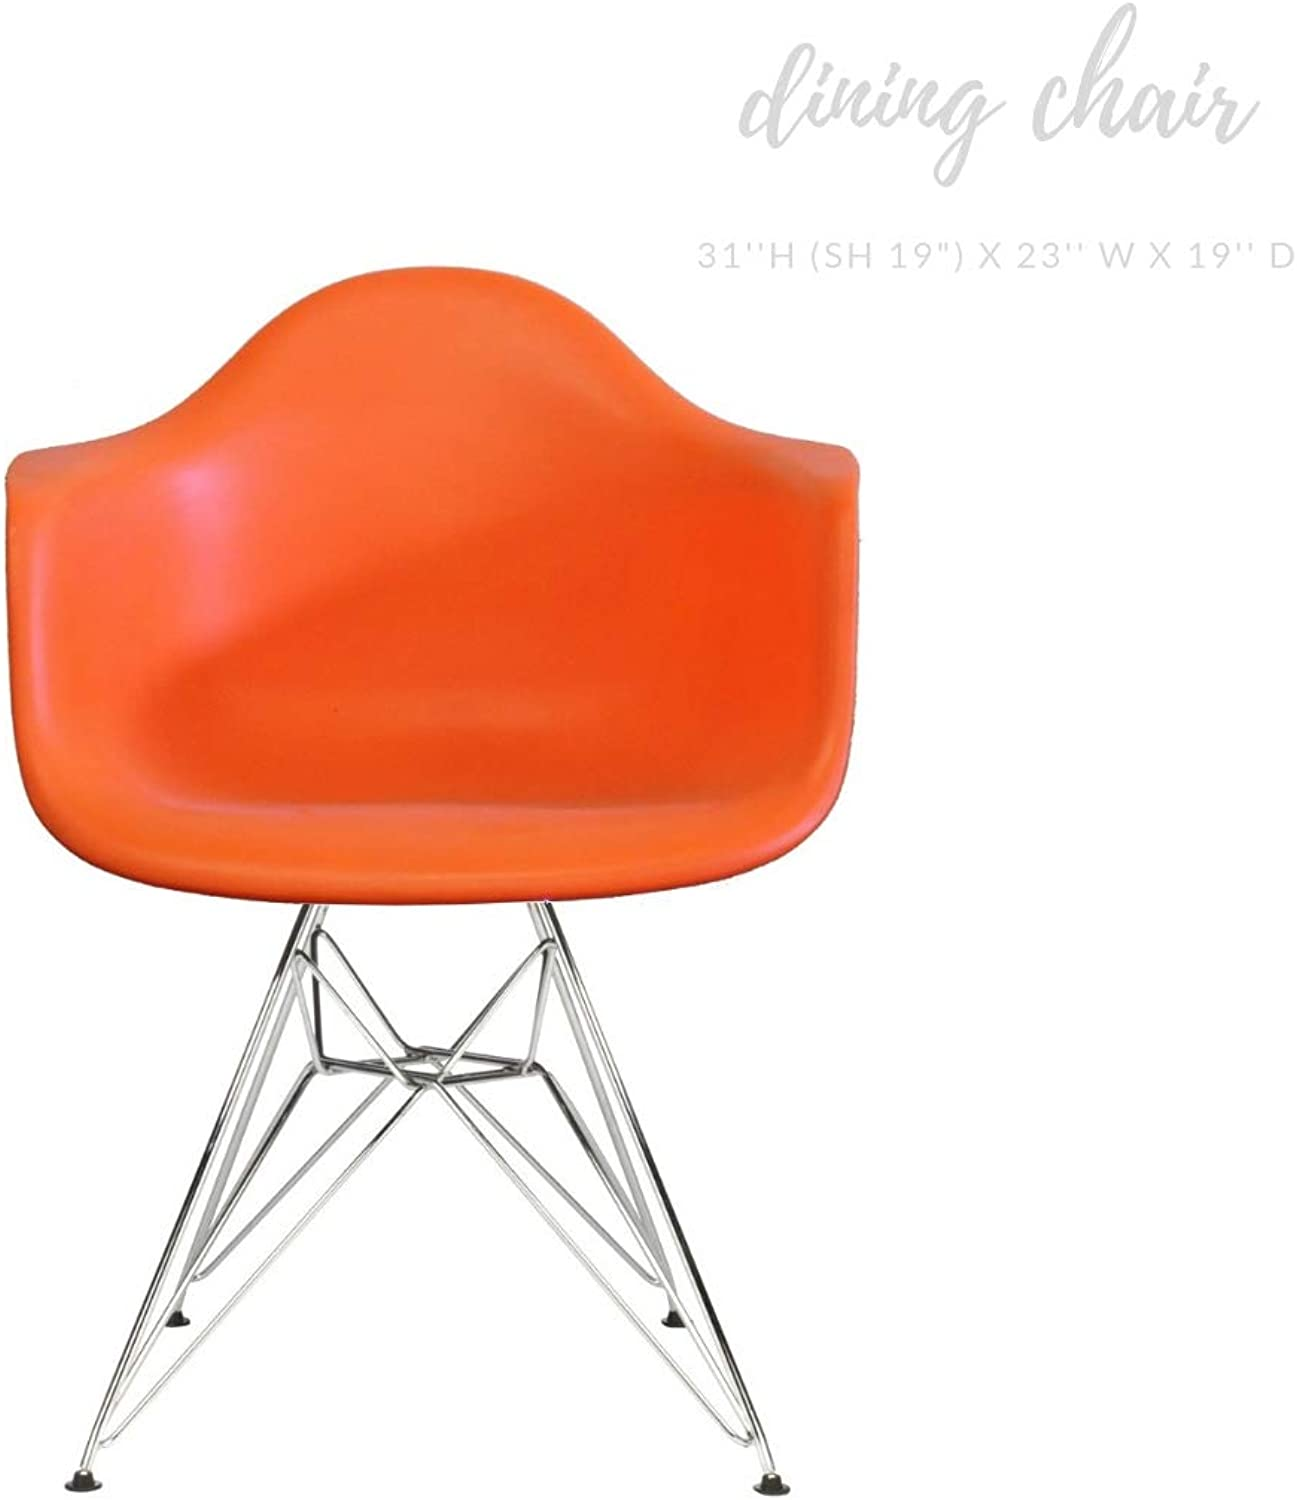 Take Me Home Furniture Eiffel Style Bucket Chair with Chrome Legs, orange, Dining Chair